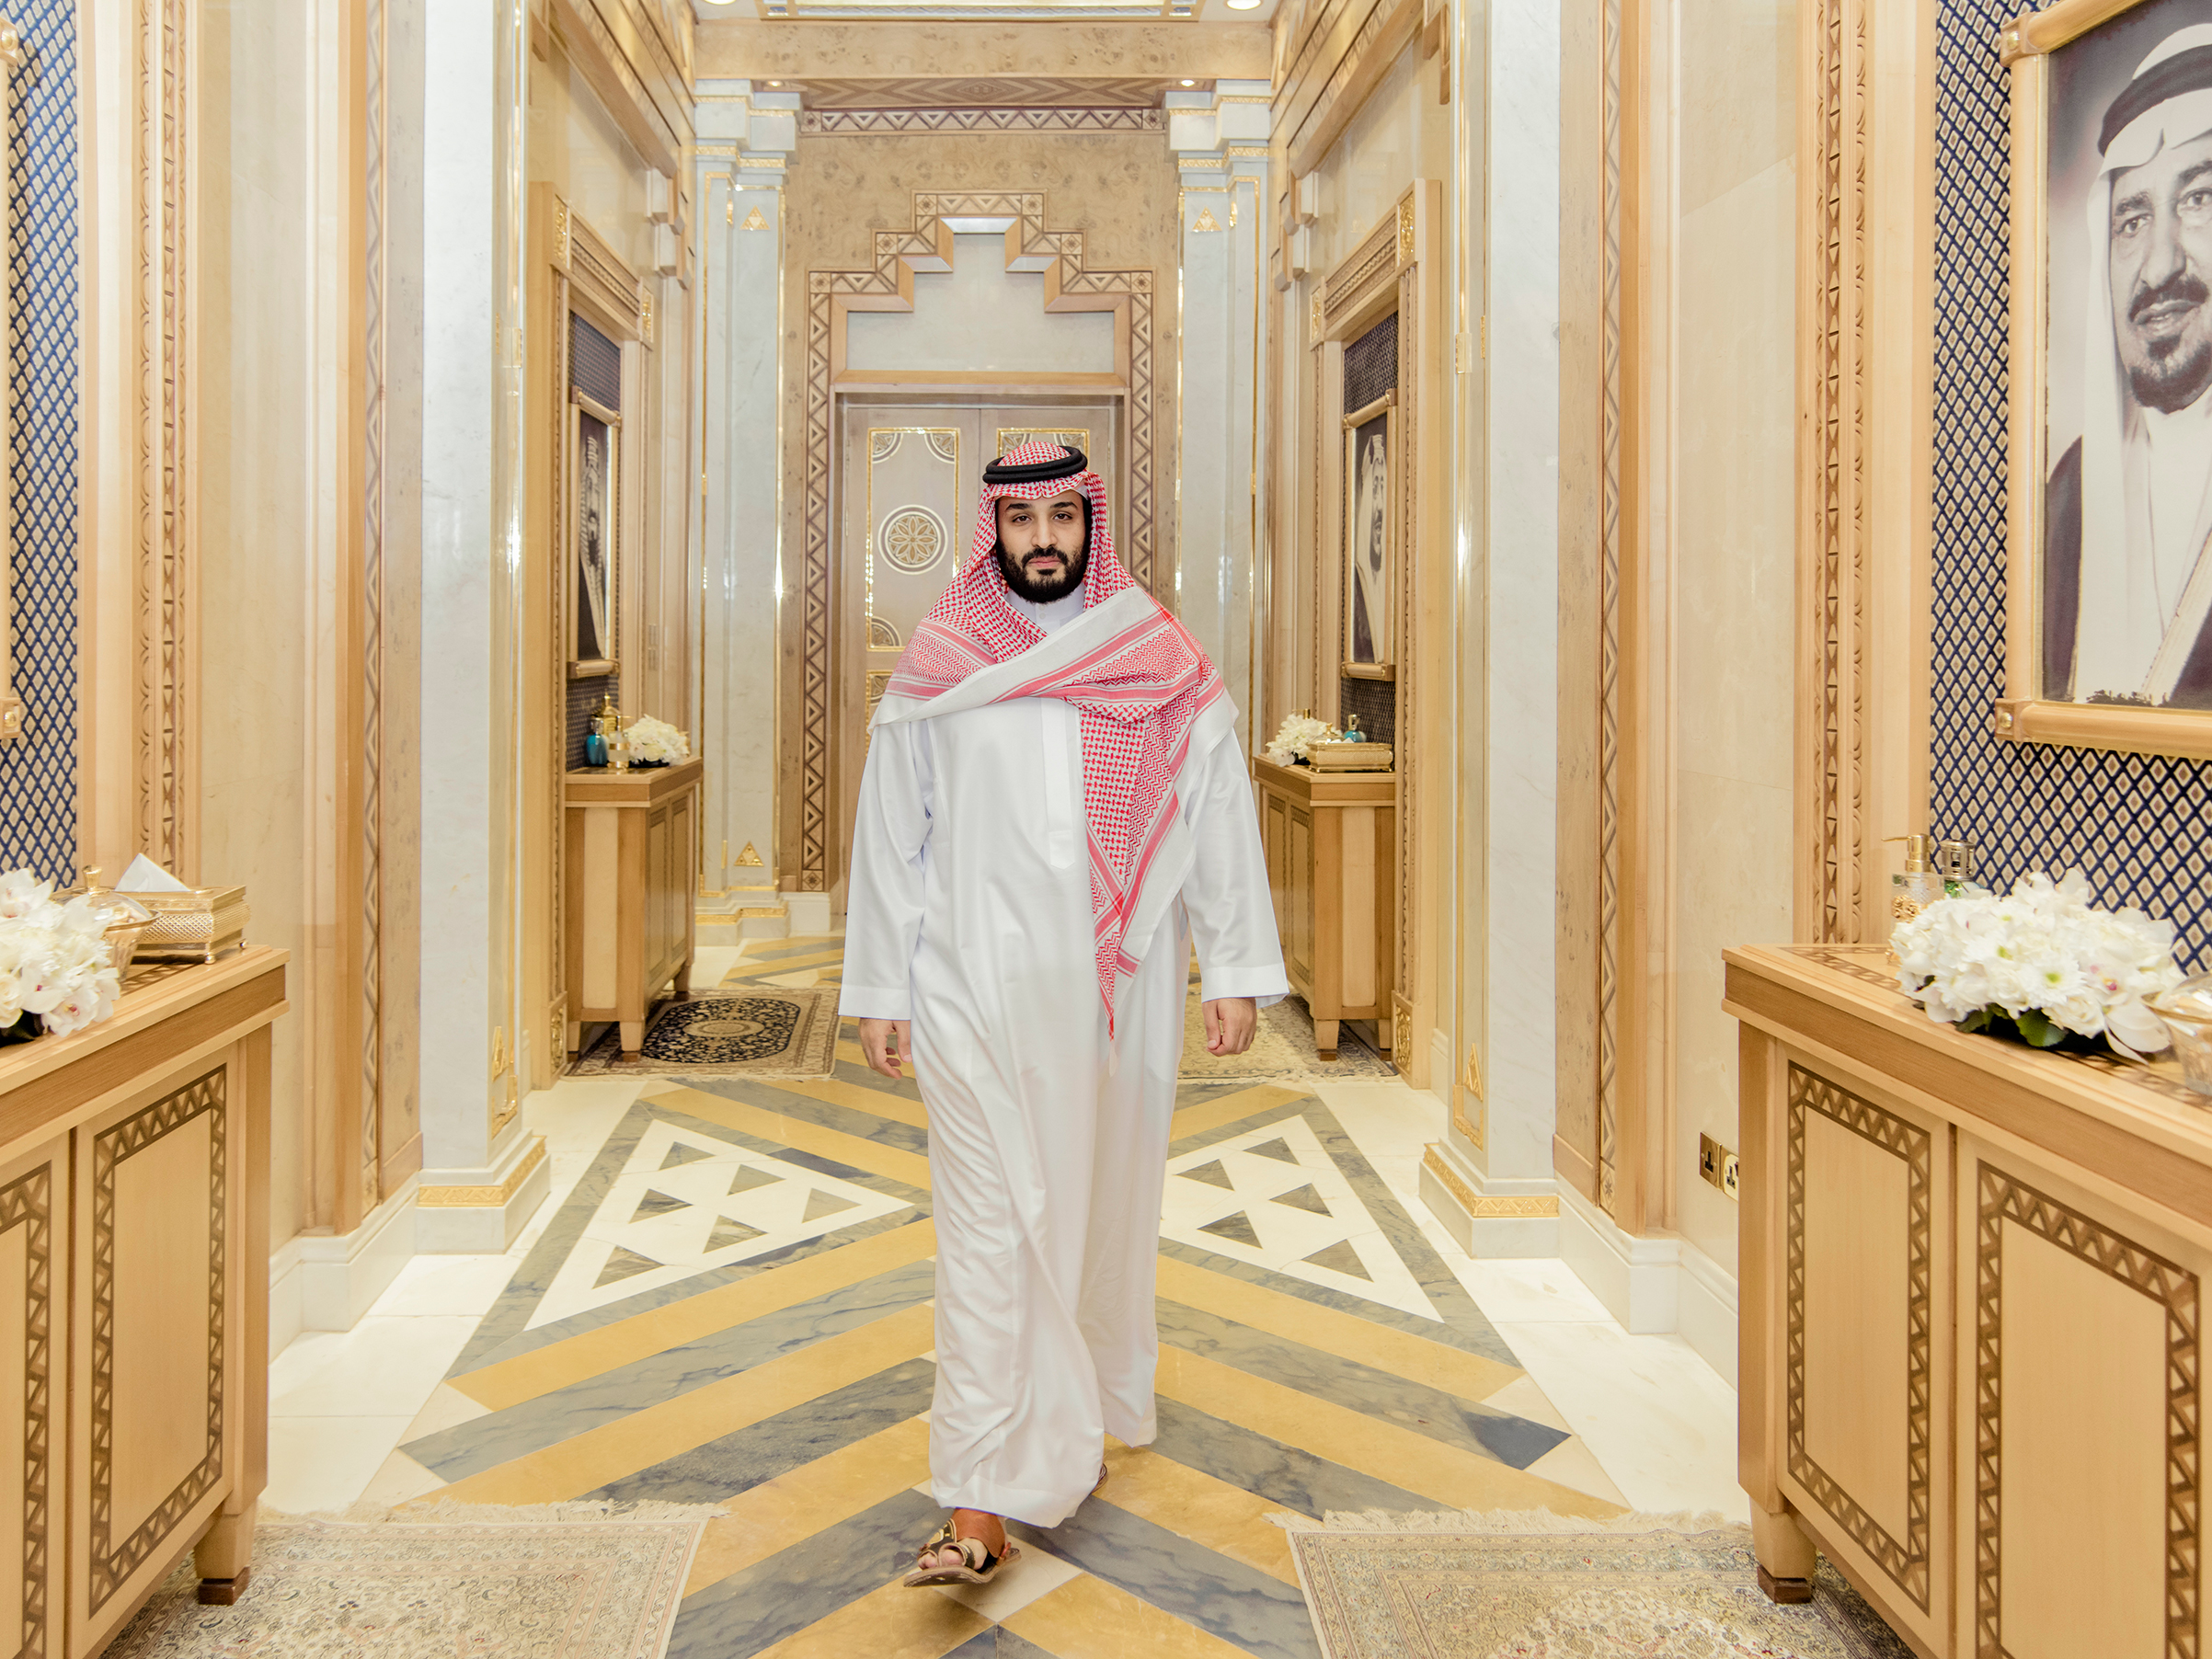 At 32, Mohammed bin Salman is the most powerful Saudi royal in decades